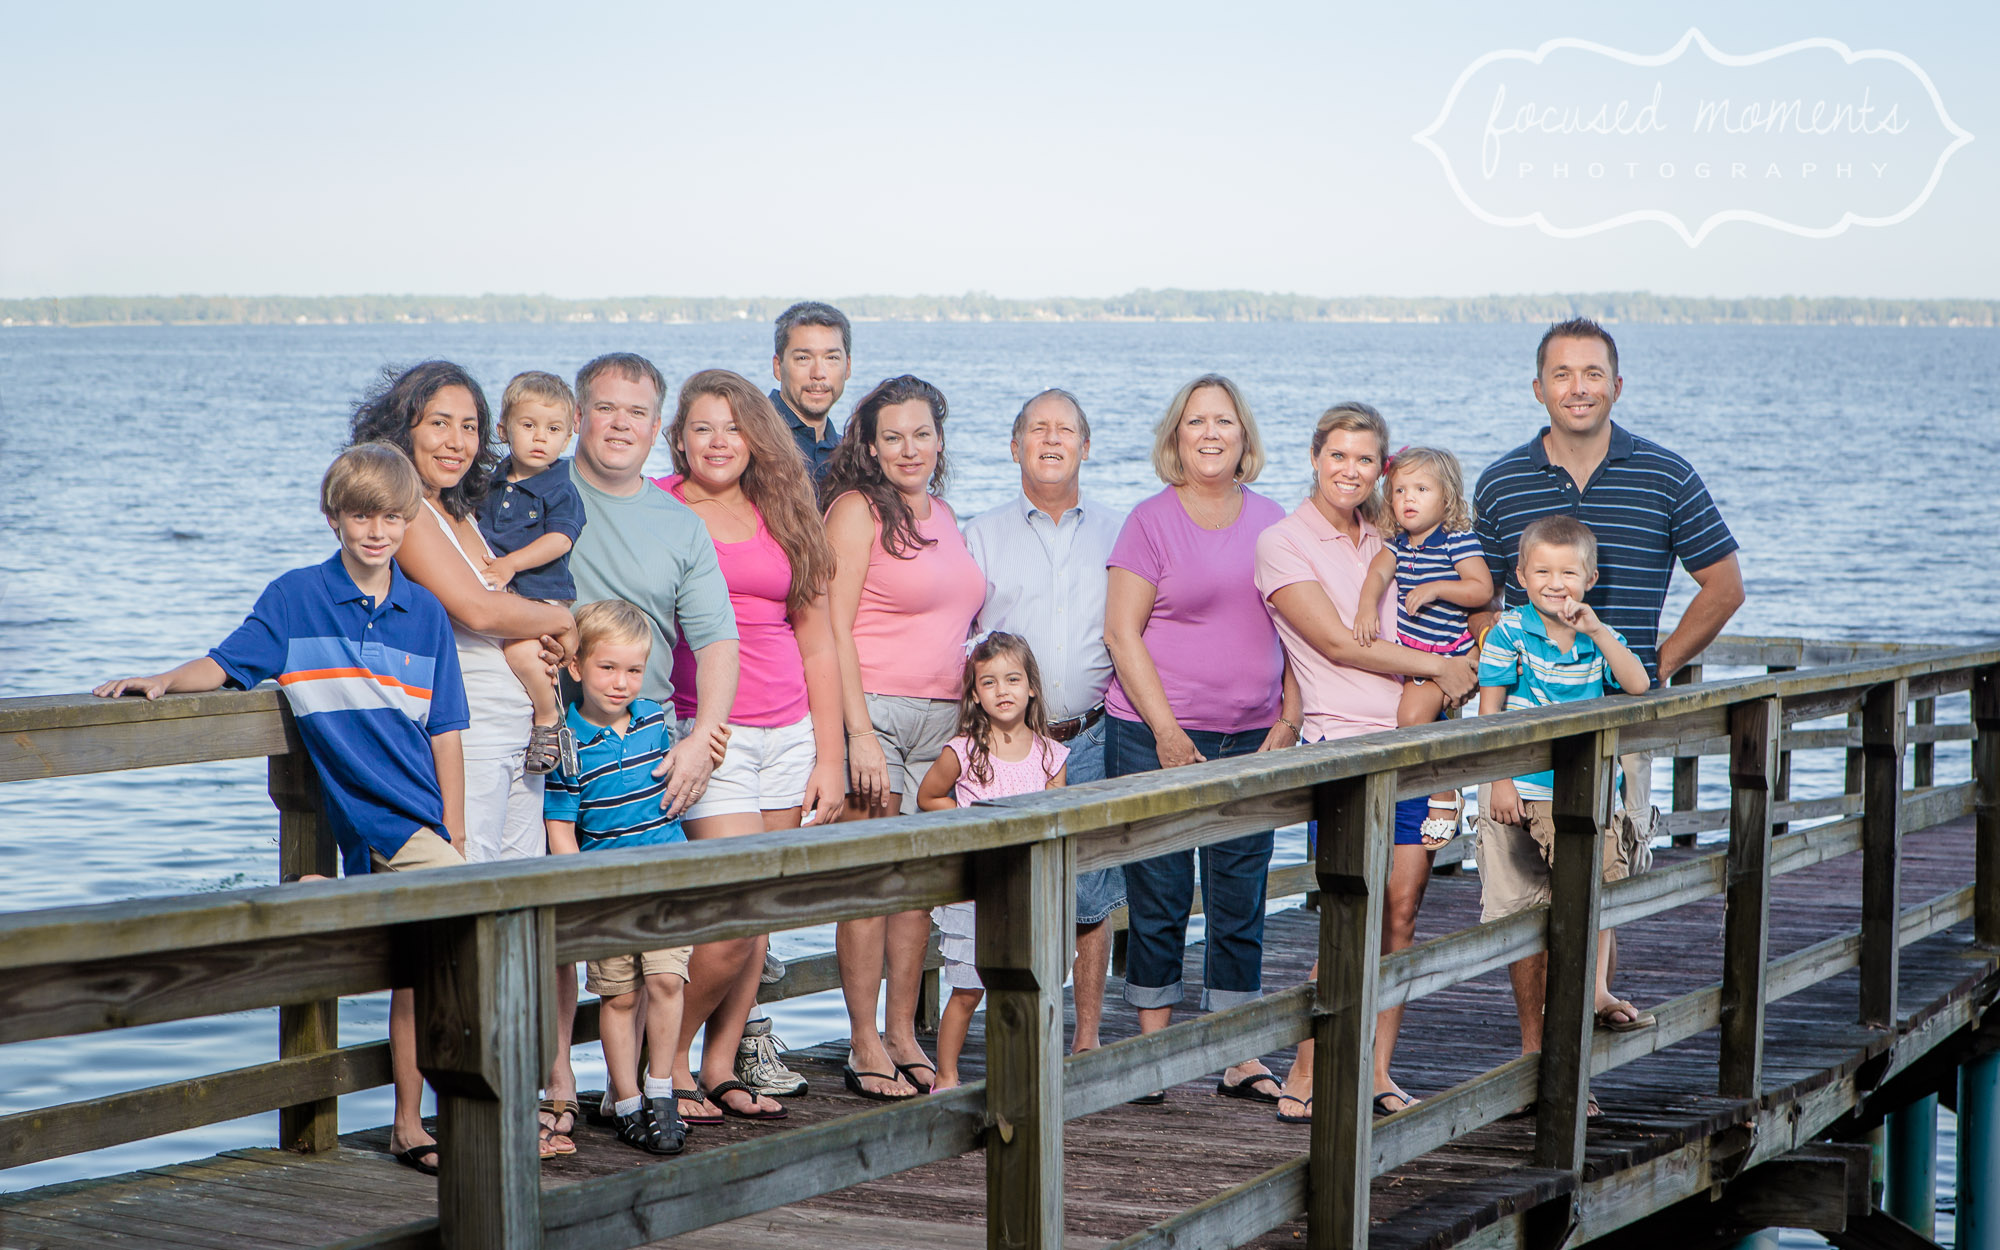 2013_08_13_Marywood_Family_Portraits_10.jpg